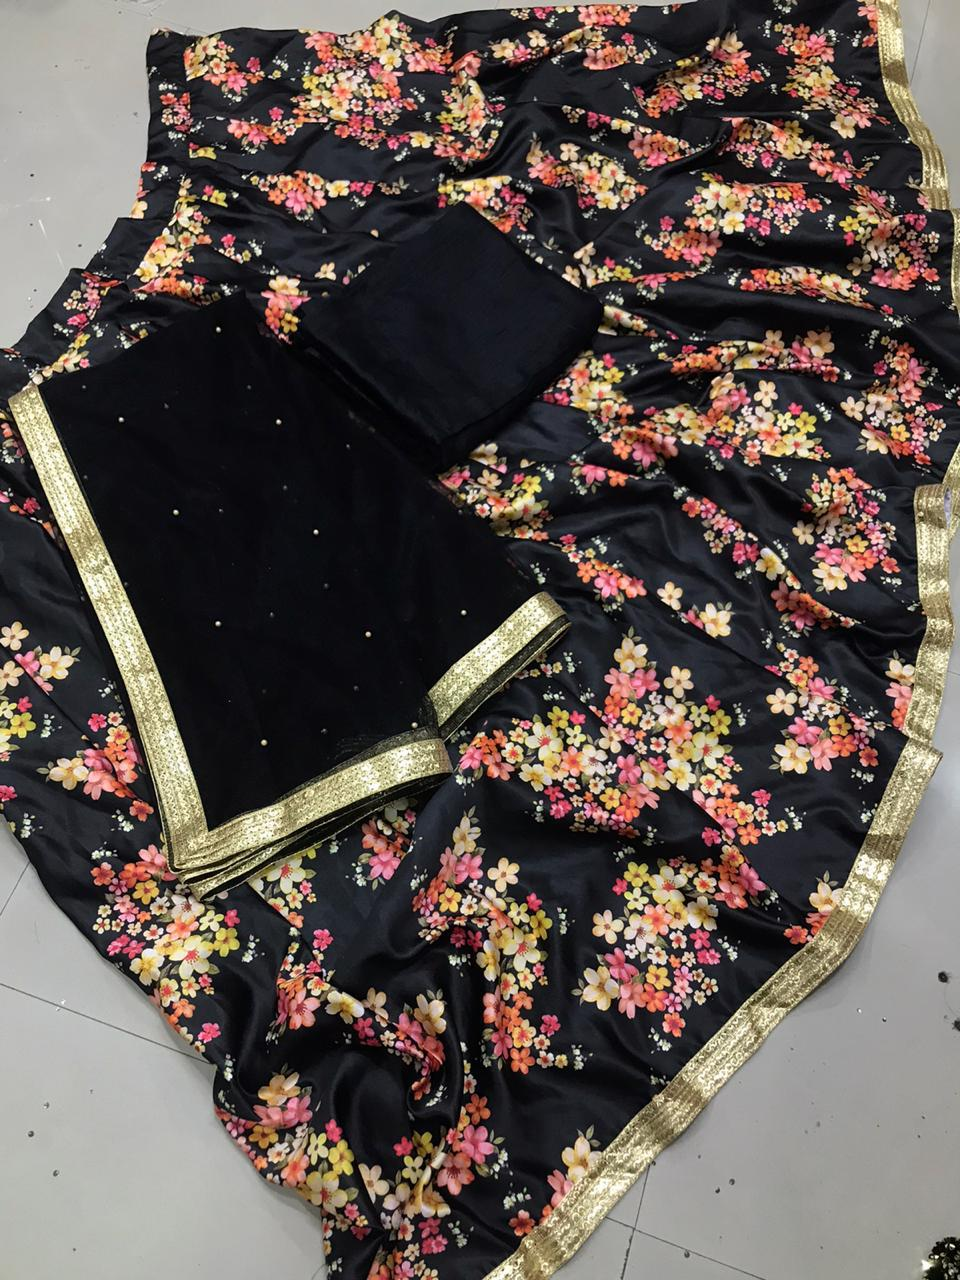 Glorious Black Color Function Wear Designer Japan Satin Silk Digital Printed Lehenga Choli for Women